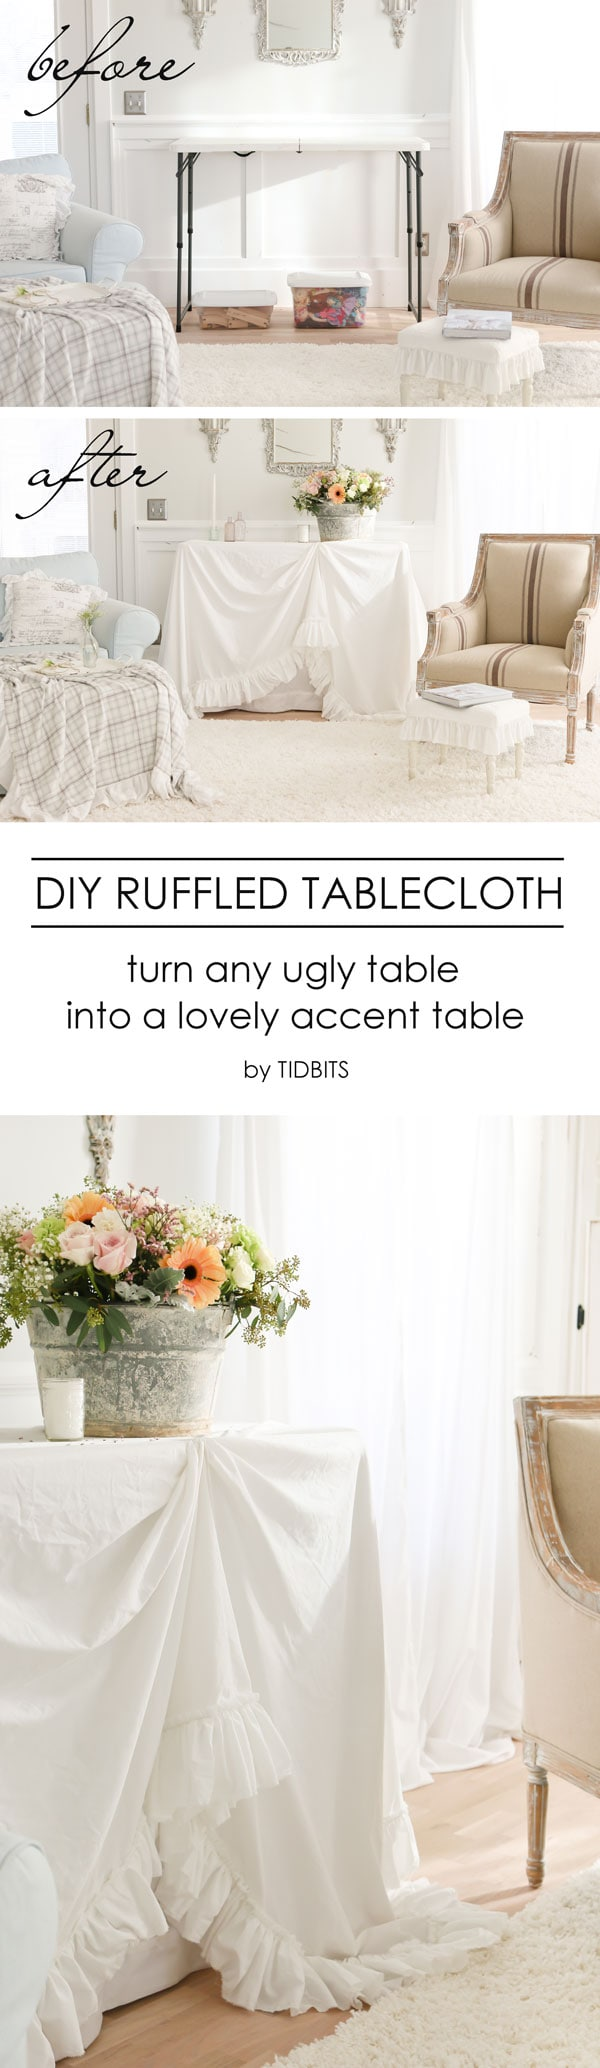 diy ruffled tablecloth french vintage style tidbits accent table ruffle from cotton sheets turn your inexpensive fold tables into lovely retro dining and chairs coffee freya round